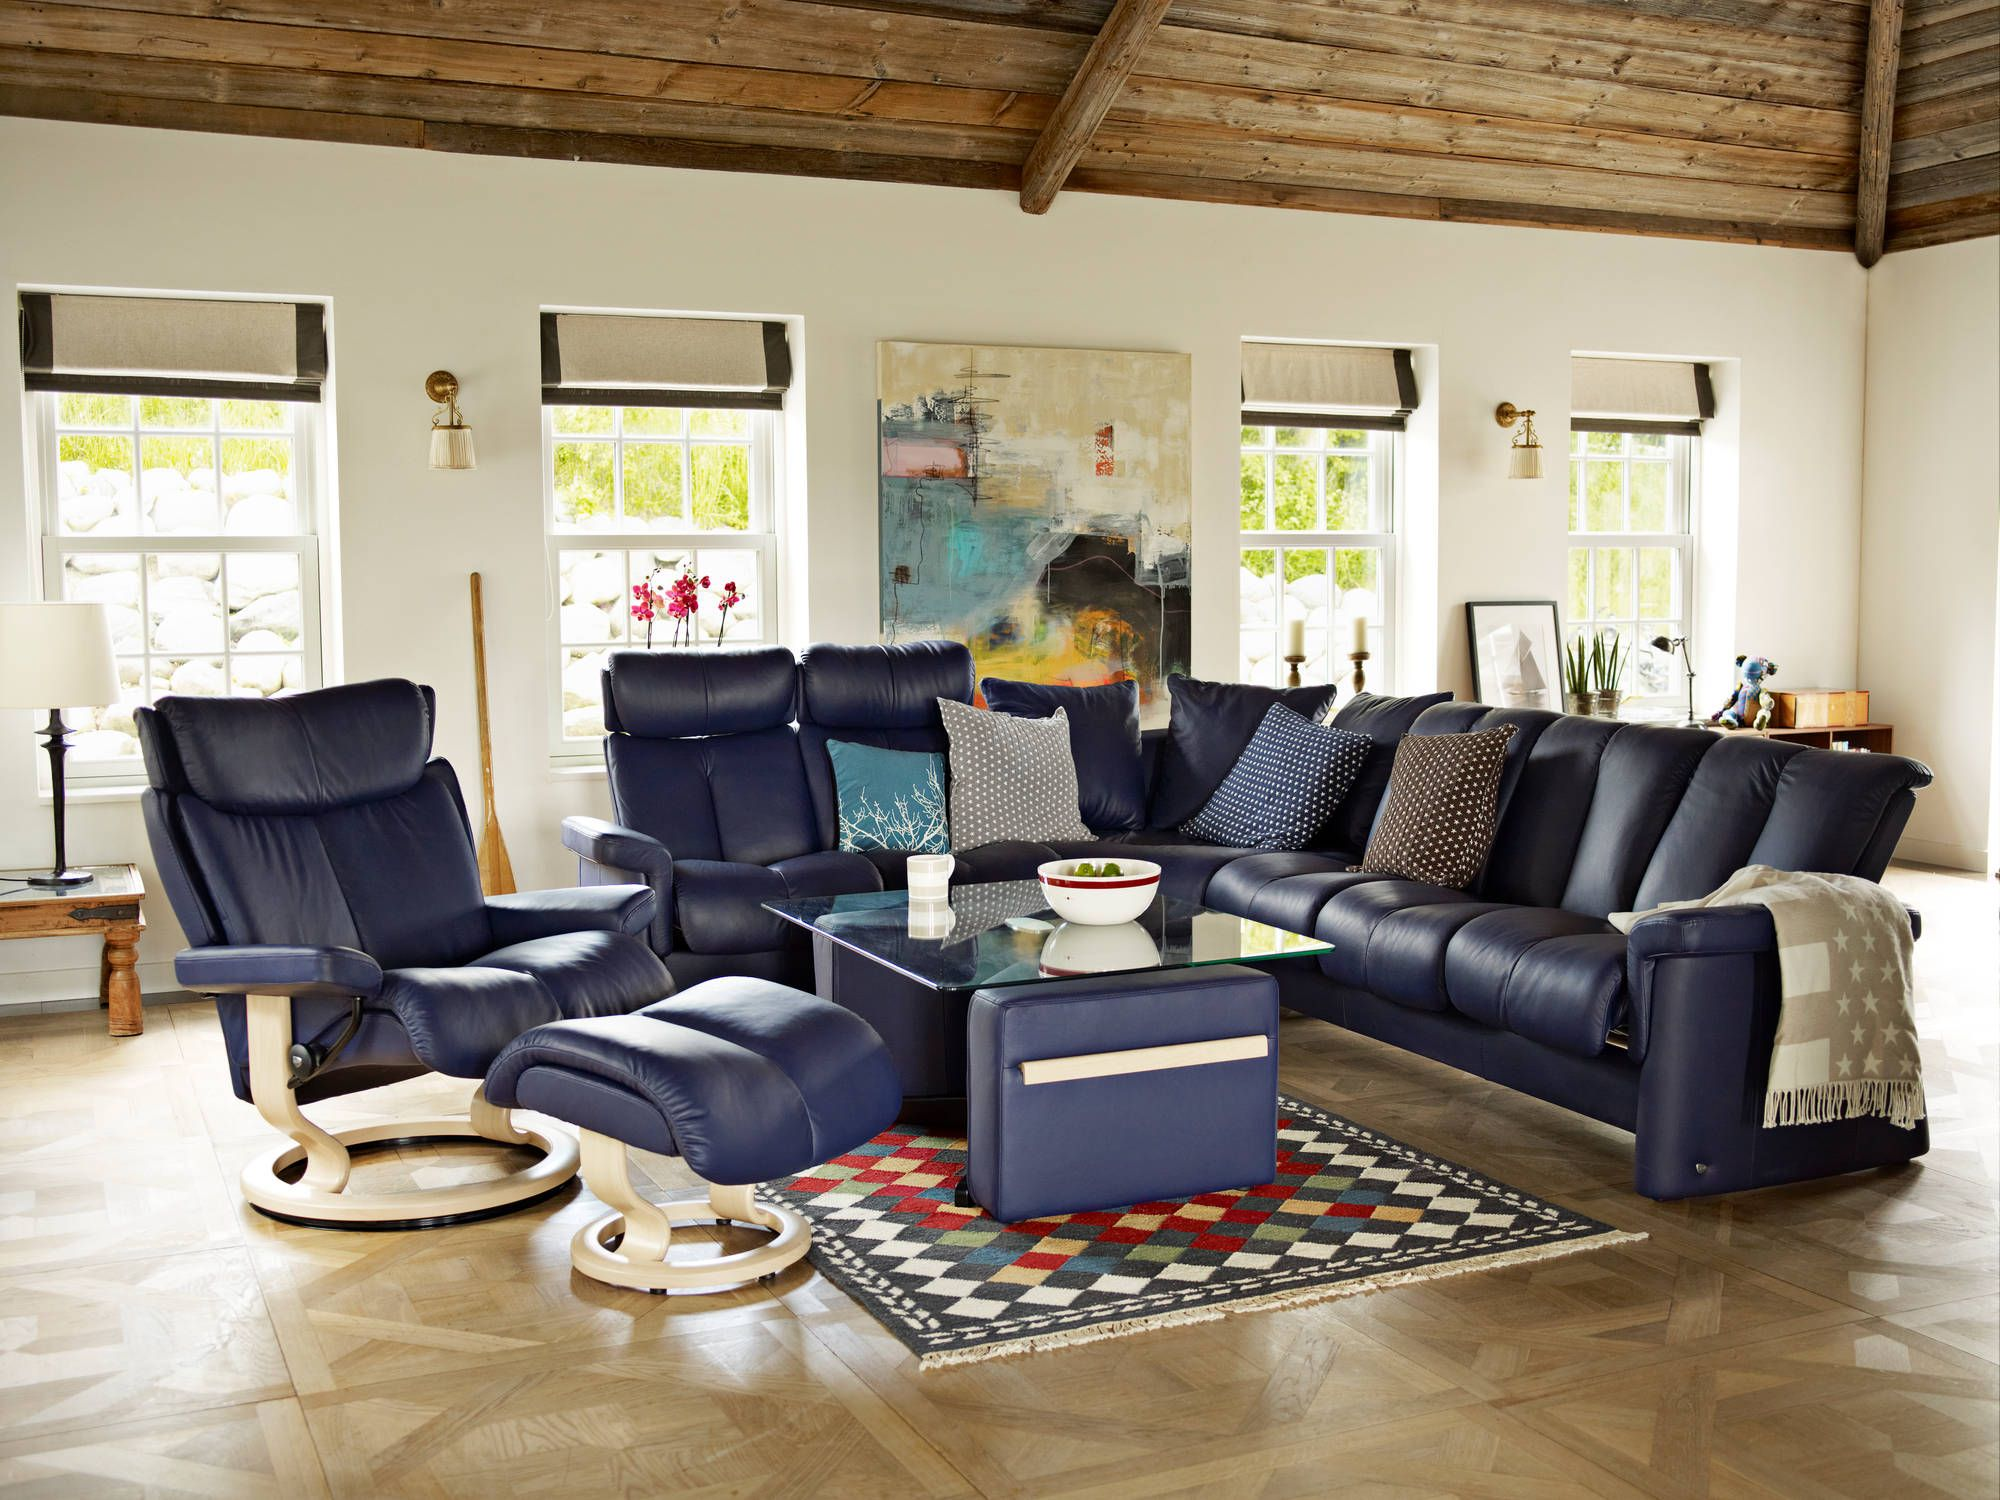 Ekornes chairs for sale stressless paloma indigo leather by ekornes - Stressless Legend Sofa In Paloma Leather Color Indigo And Magic Recliner In Indigo